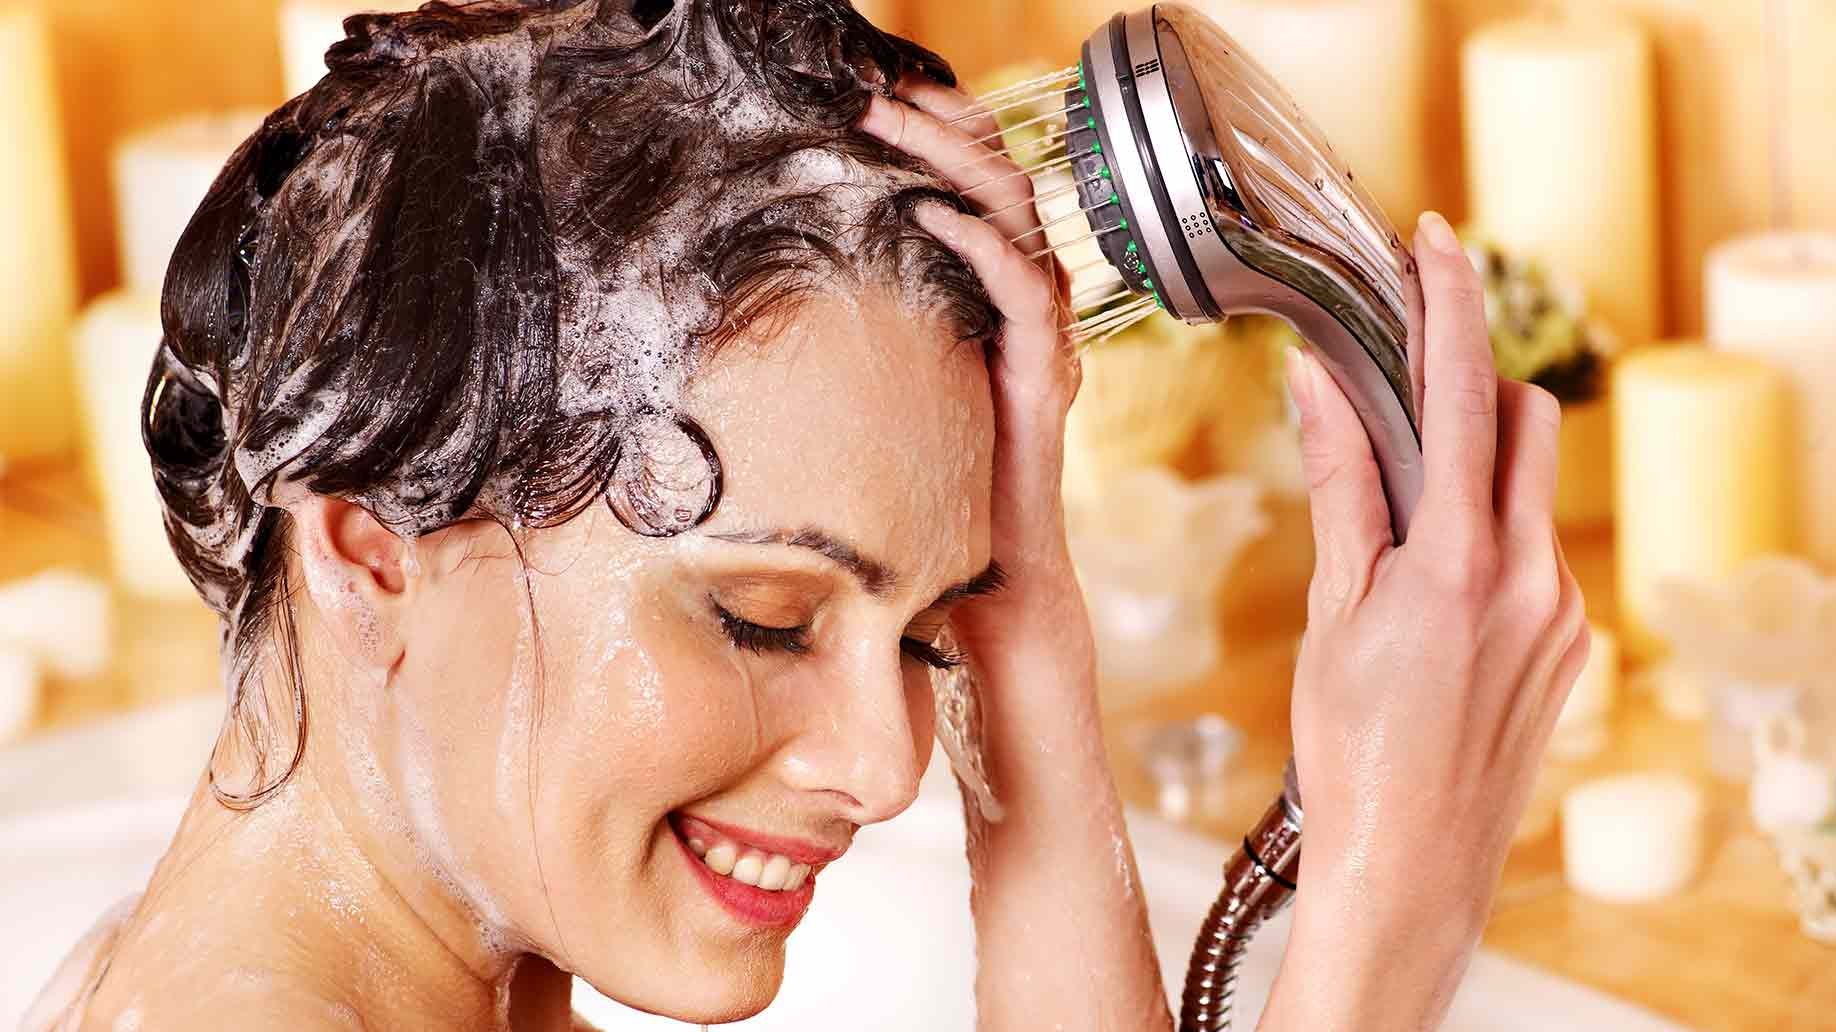 bride washes her hair in the bathroom